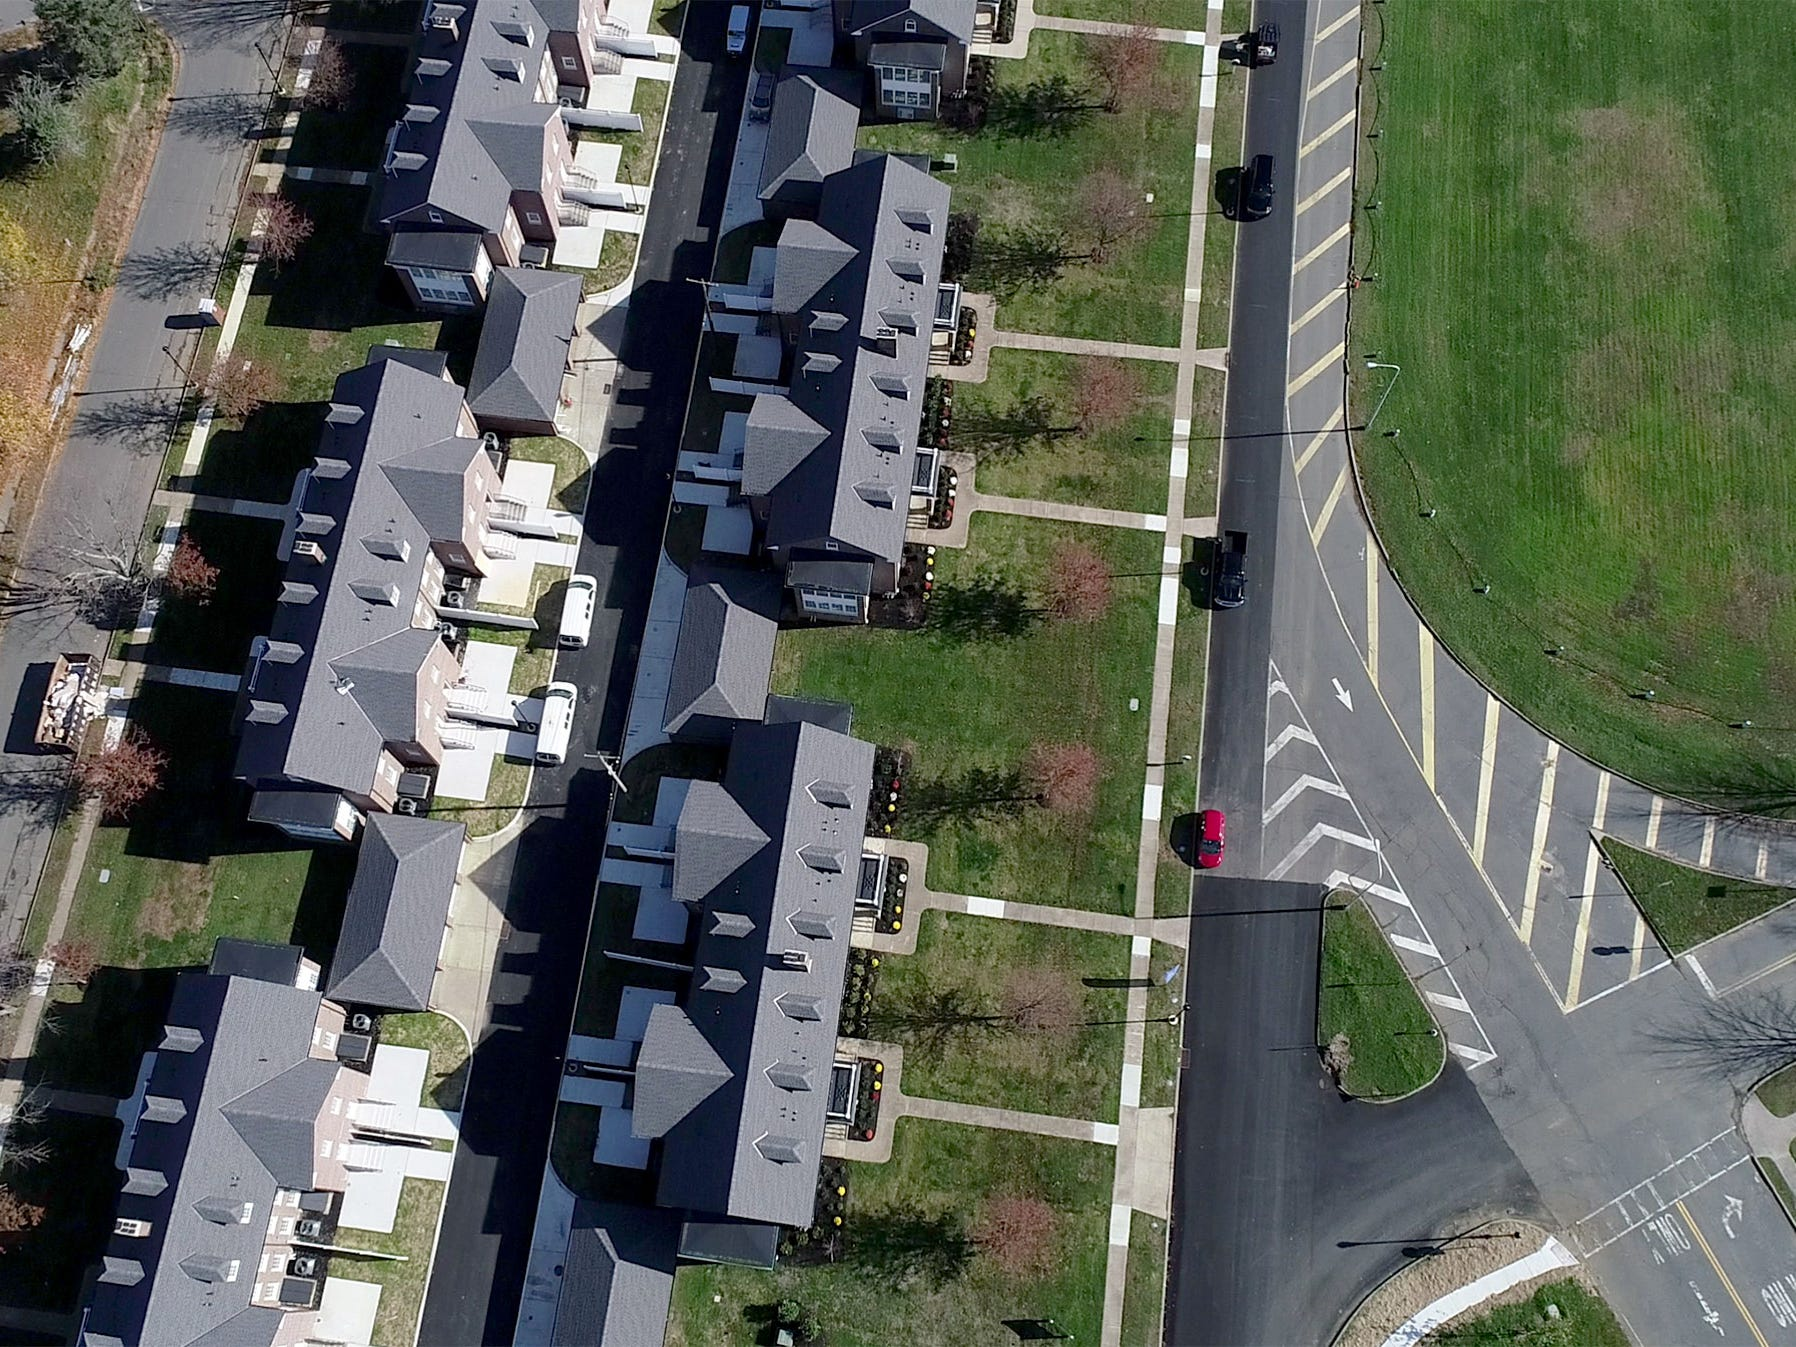 Aerial survey of the former Fort Monmouth property.